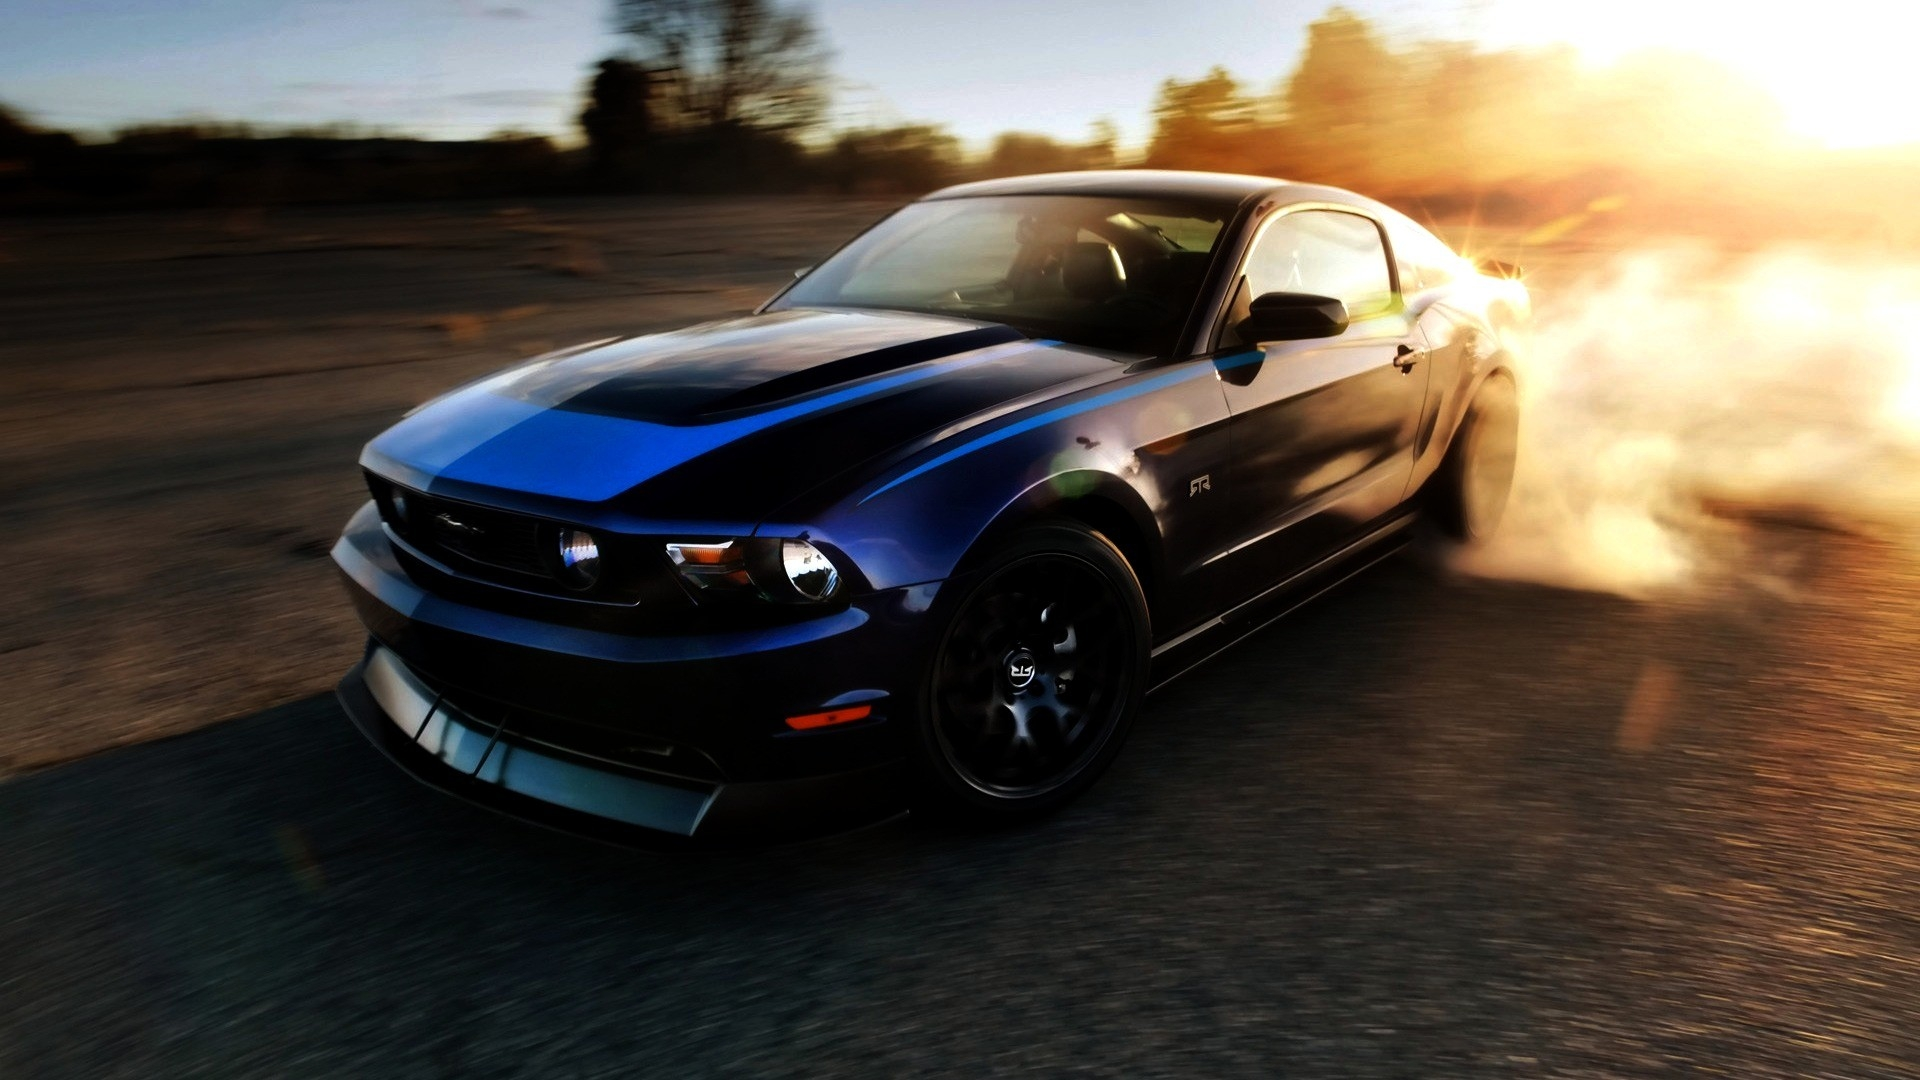 ford wallpaper 1920x1080 download